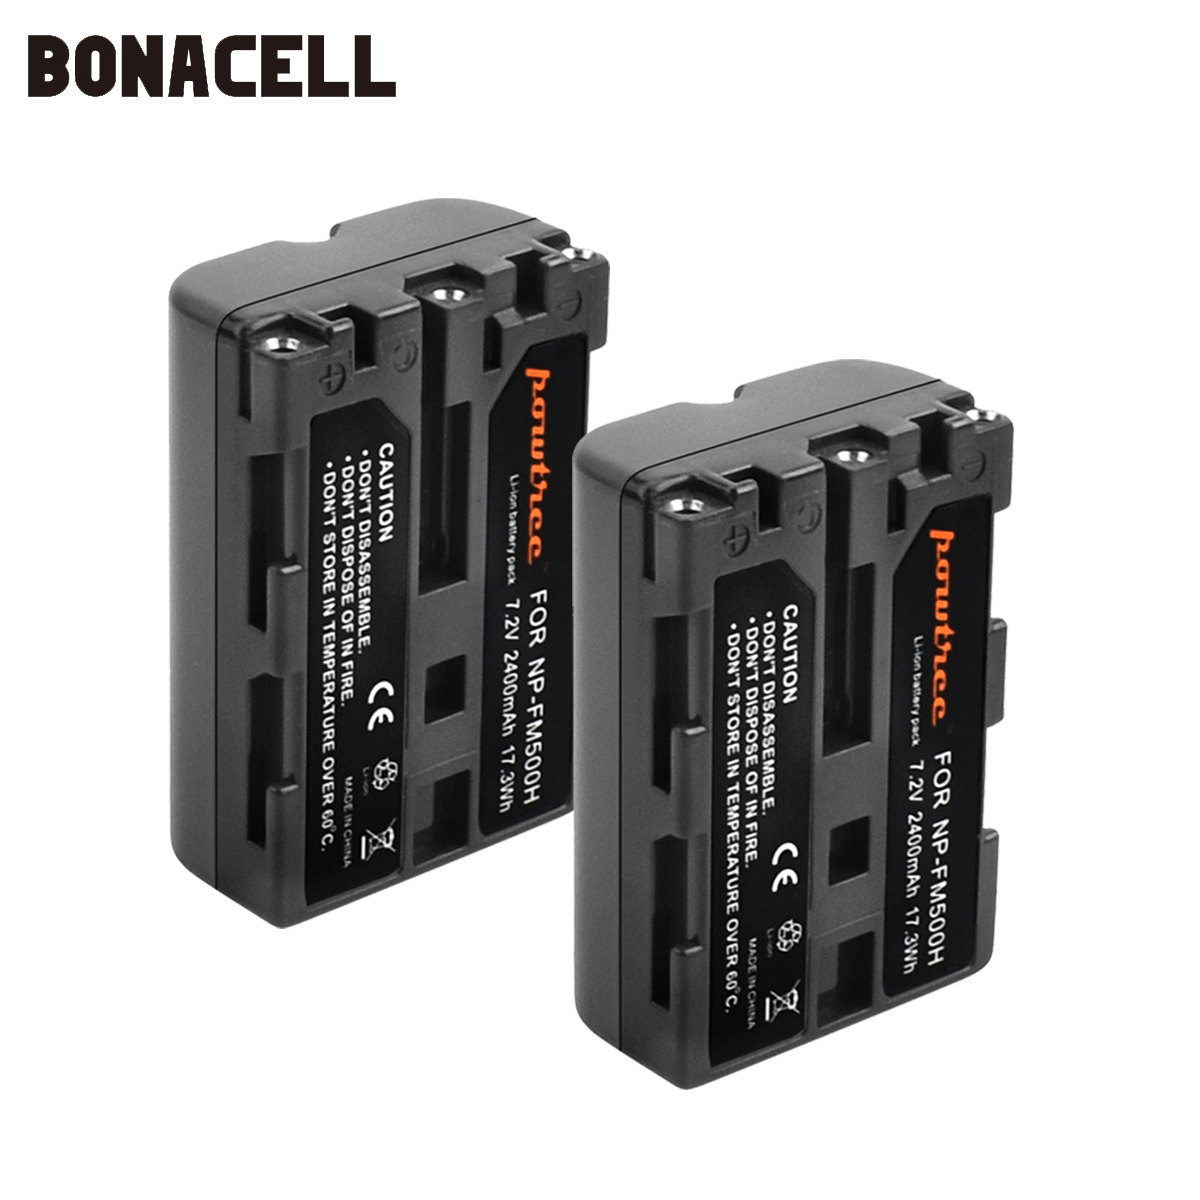 Bonacell 2400mAh NP-FM500H NP FM500H NPFM500H Camera Battery For Sony A57 A58 A65 A77 A99 A550 A560 A580 Battery L10